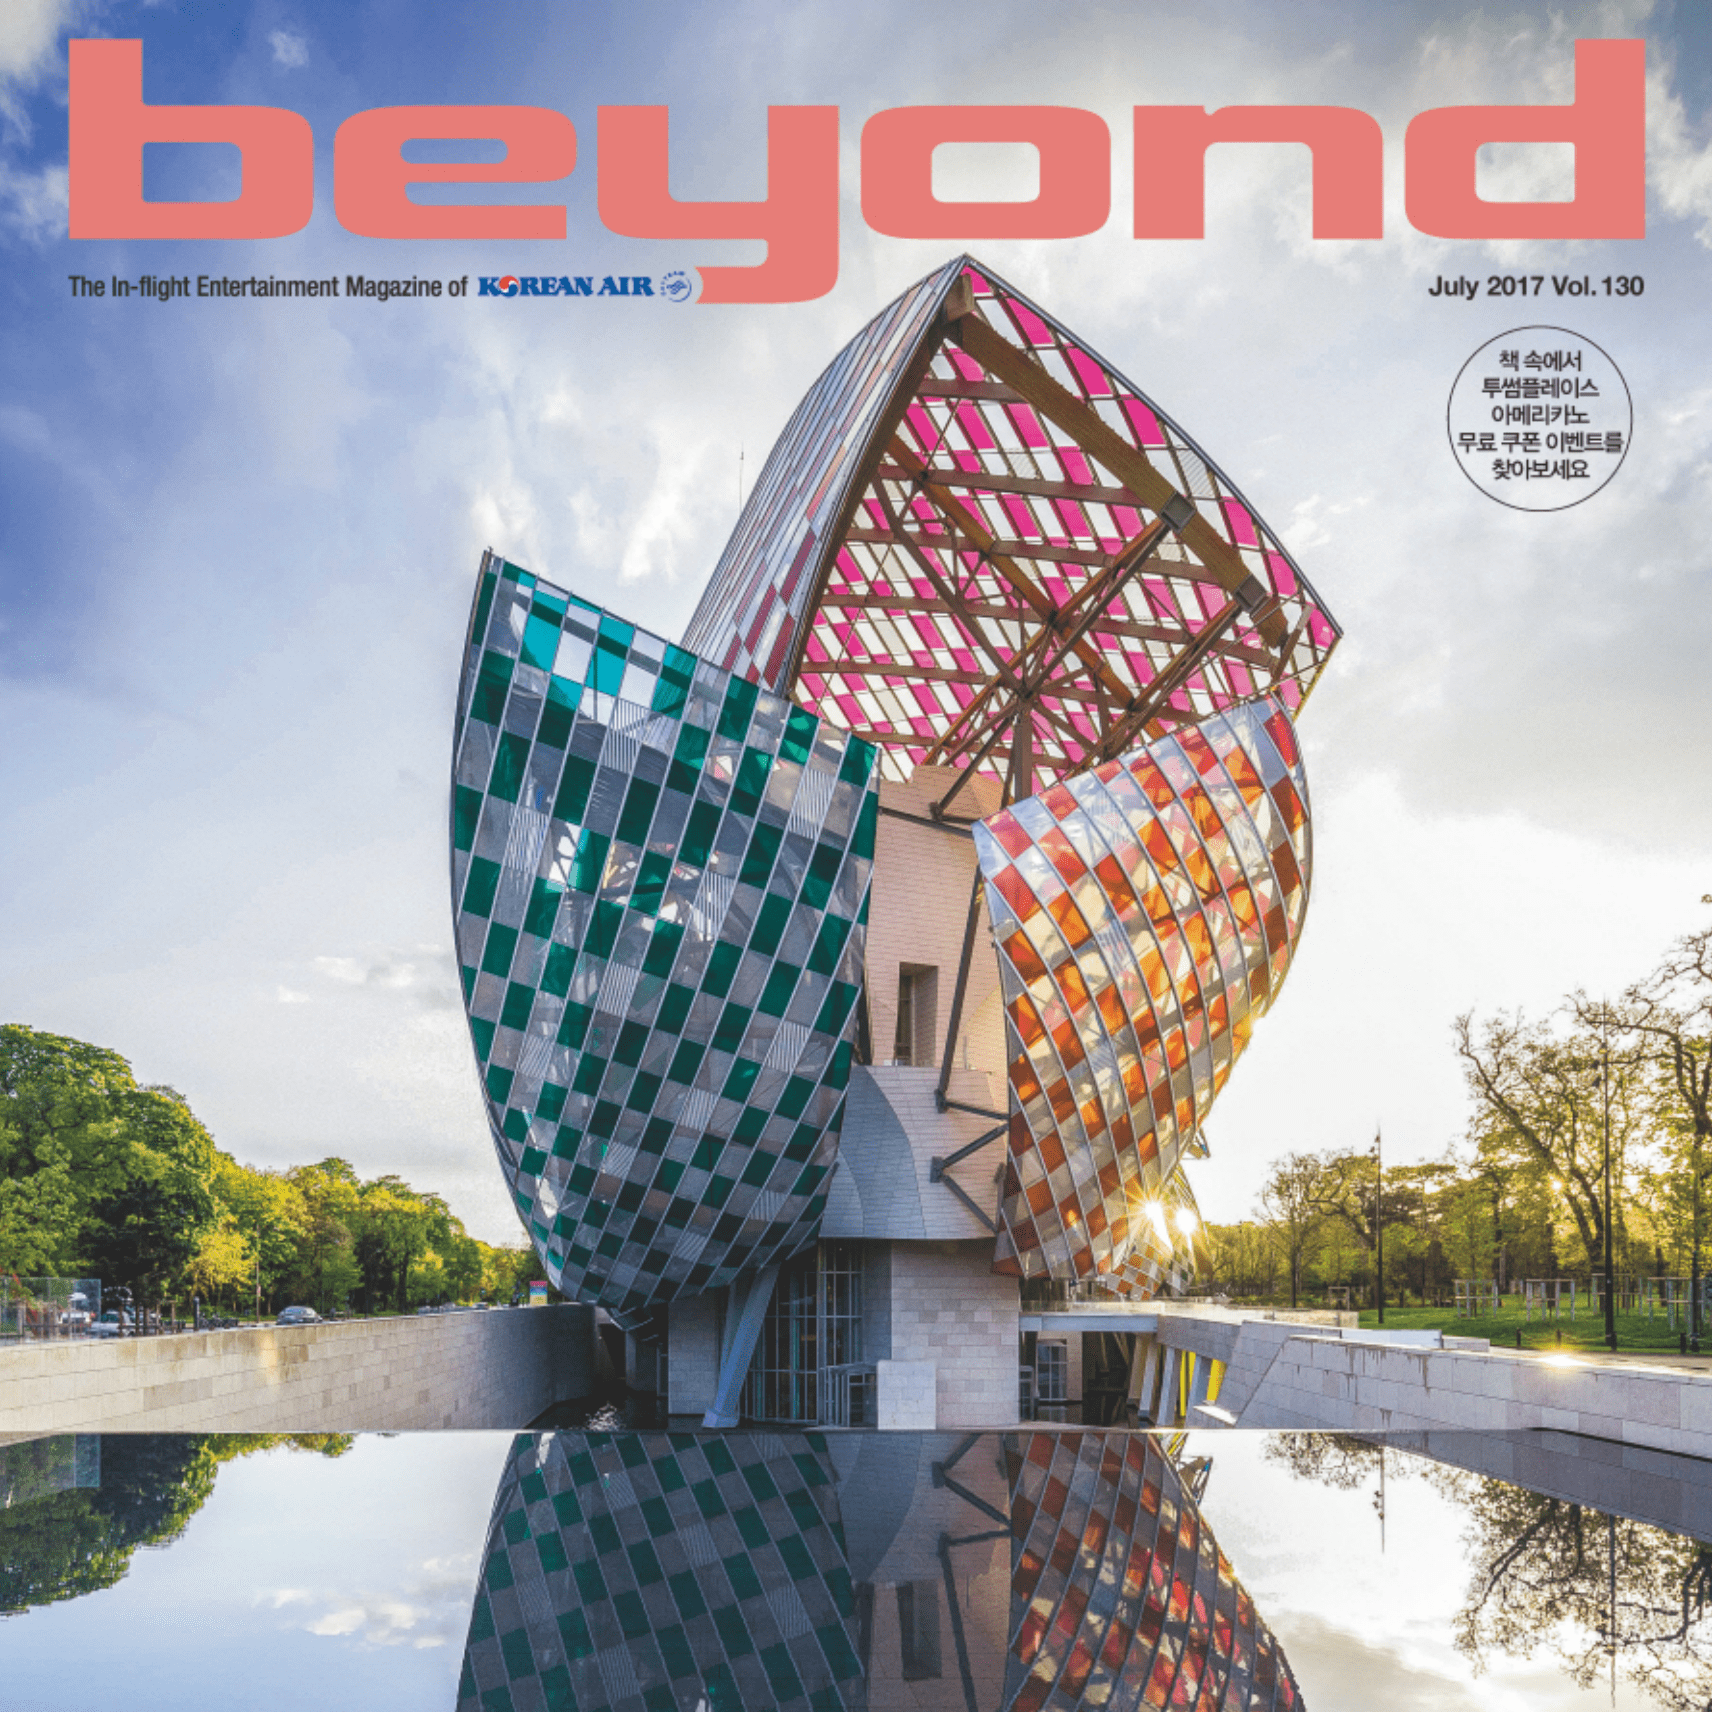 Beyond Vol. 130 - July 2017 - 116 pages